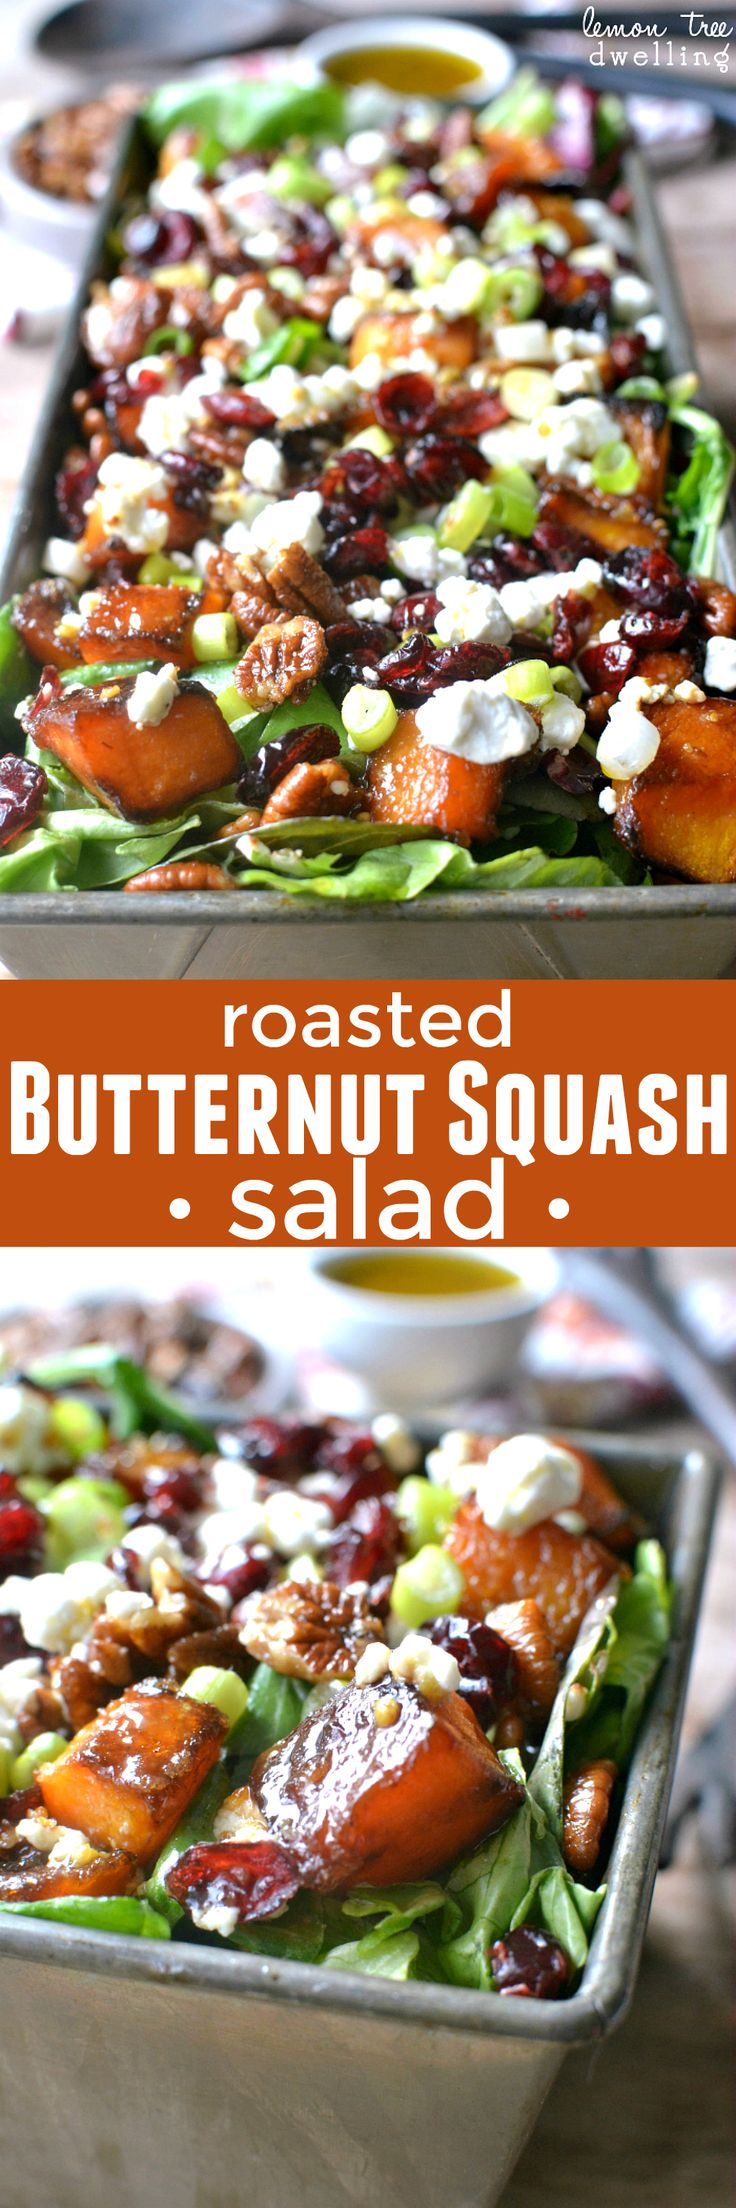 Mixed greens topped with roasted butternut squash, pecans, dried cranberries, goat cheese, and maple mustard vinaigrette. The BEST Thanksgiving salad!! (Pumpkin Squash Recipes)